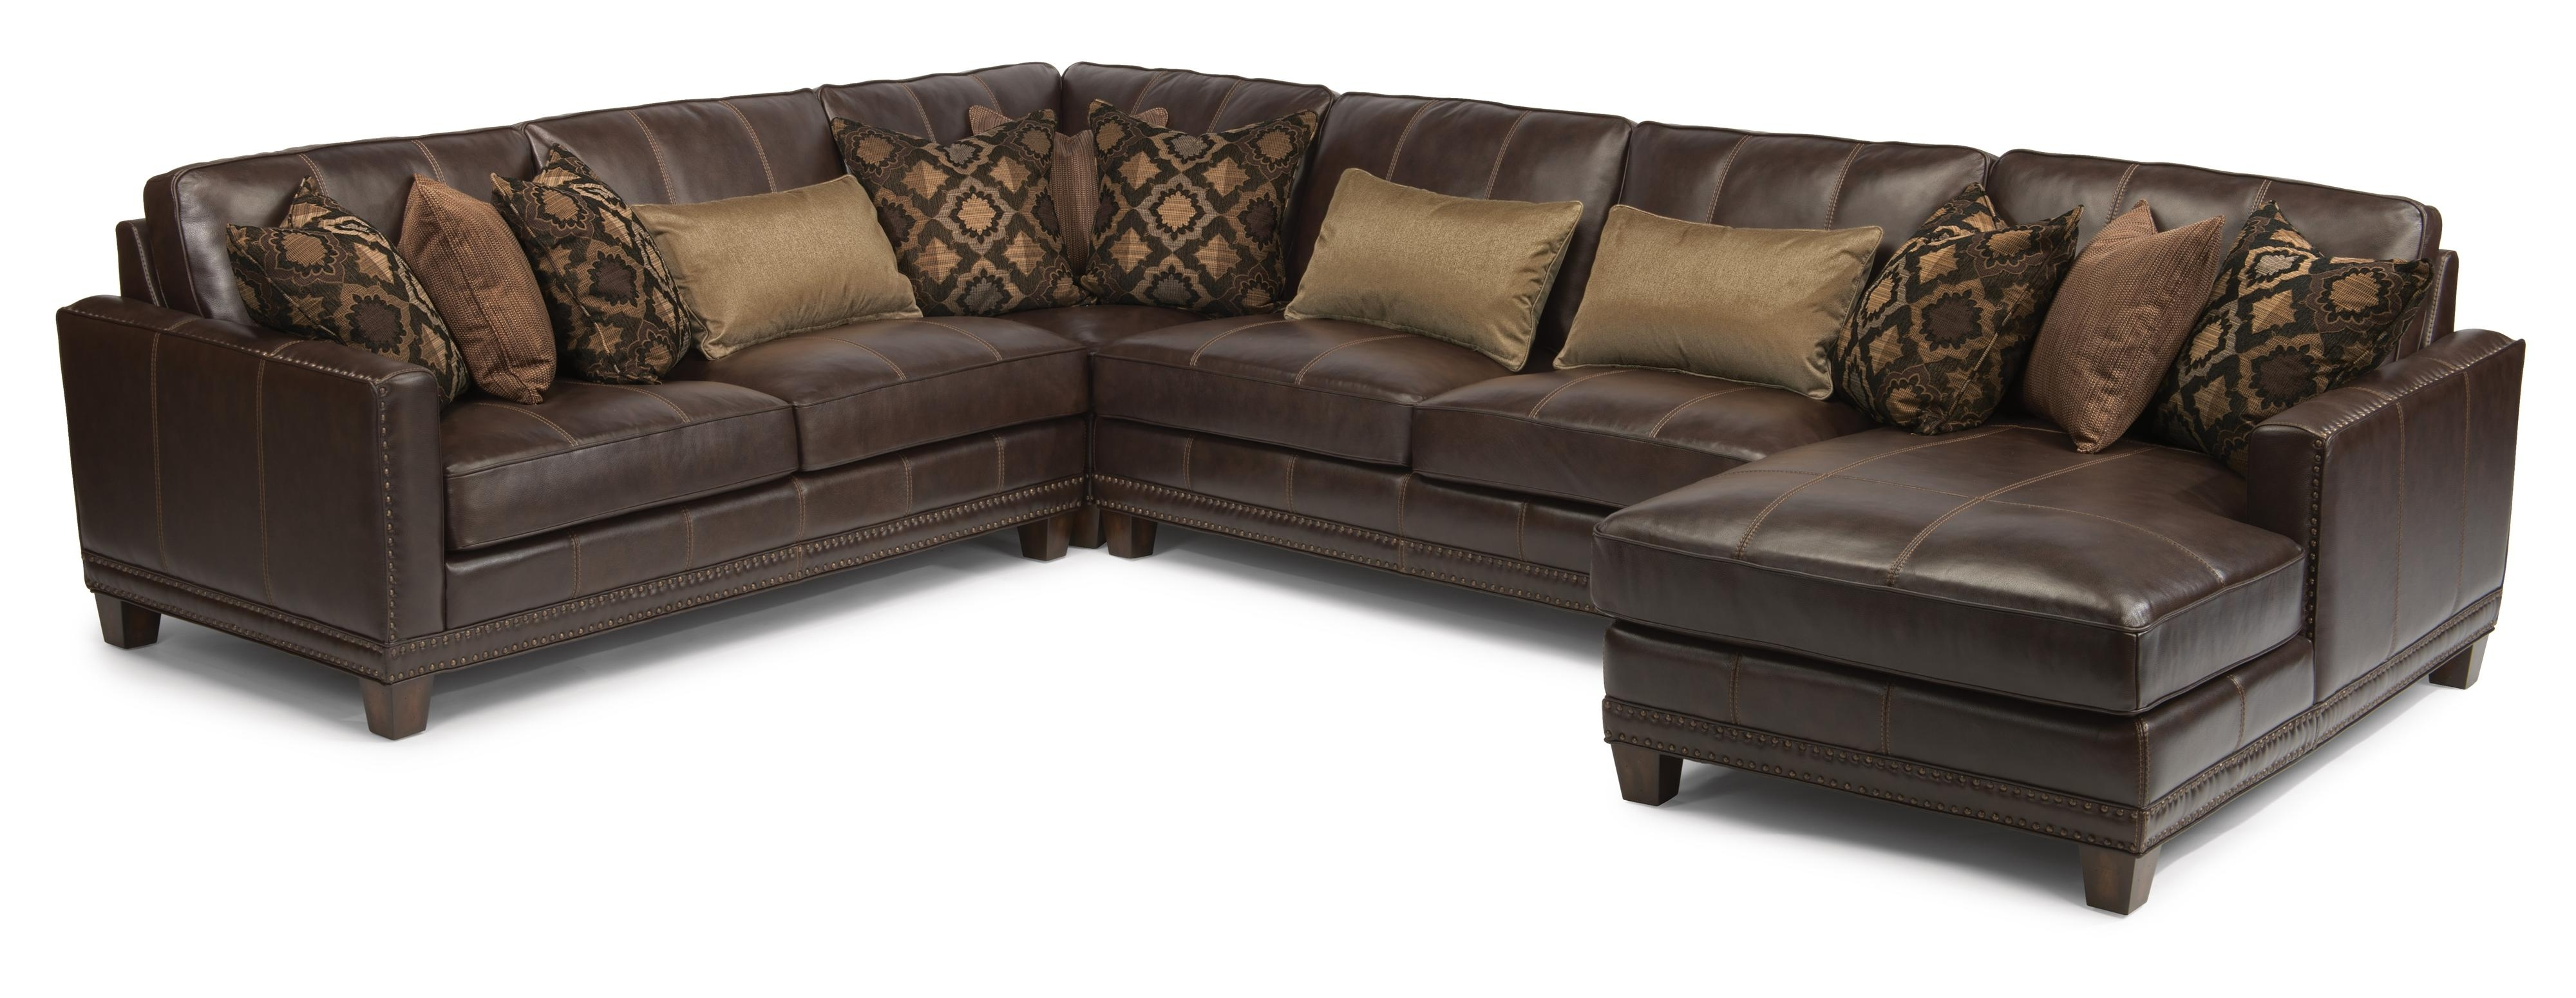 Flexsteel Latitudes – Port Royal Transitional Four Piece Sectional Intended For Fashionable Royal Furniture Sectional Sofas (View 14 of 15)